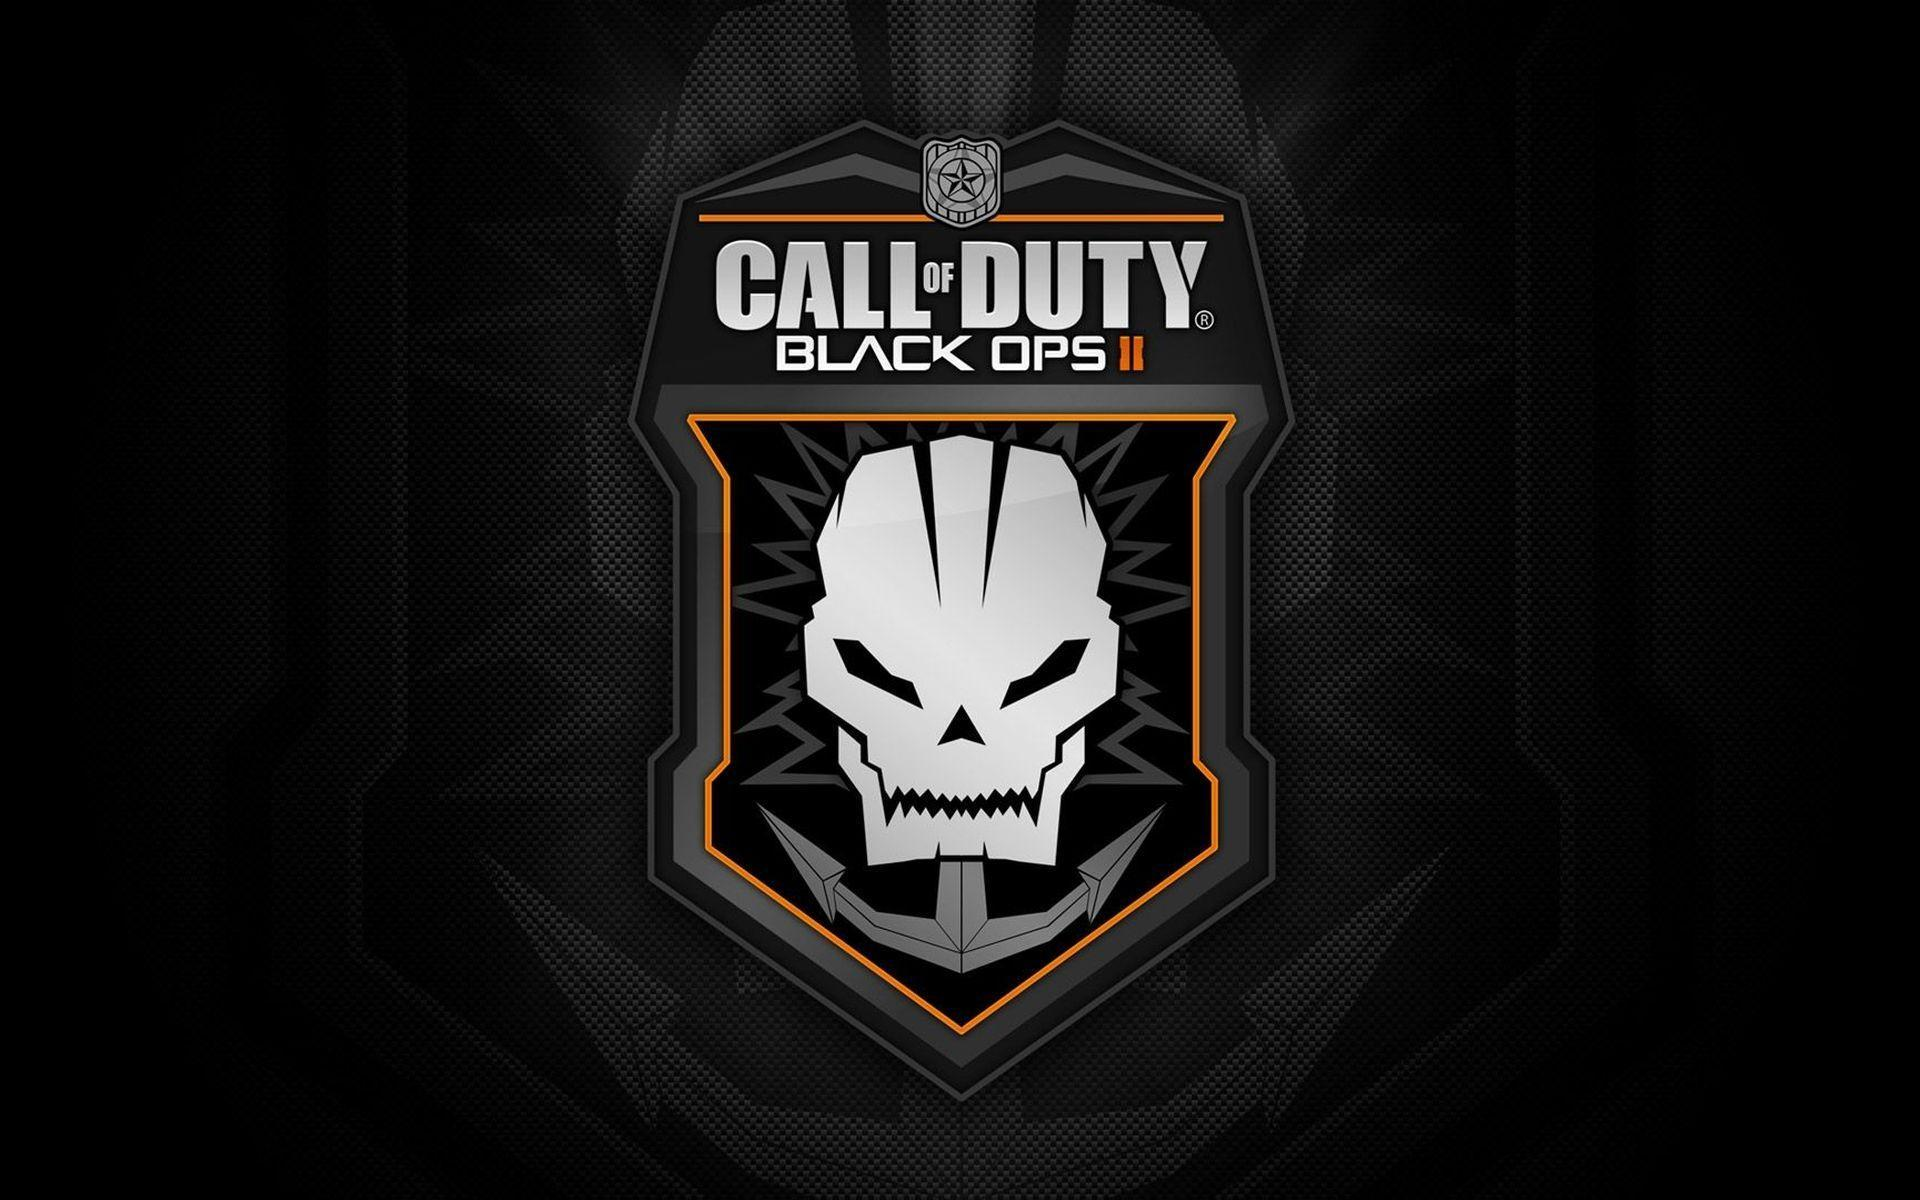 call of duty black ops 3 wallpapers and desktop backgrounds free